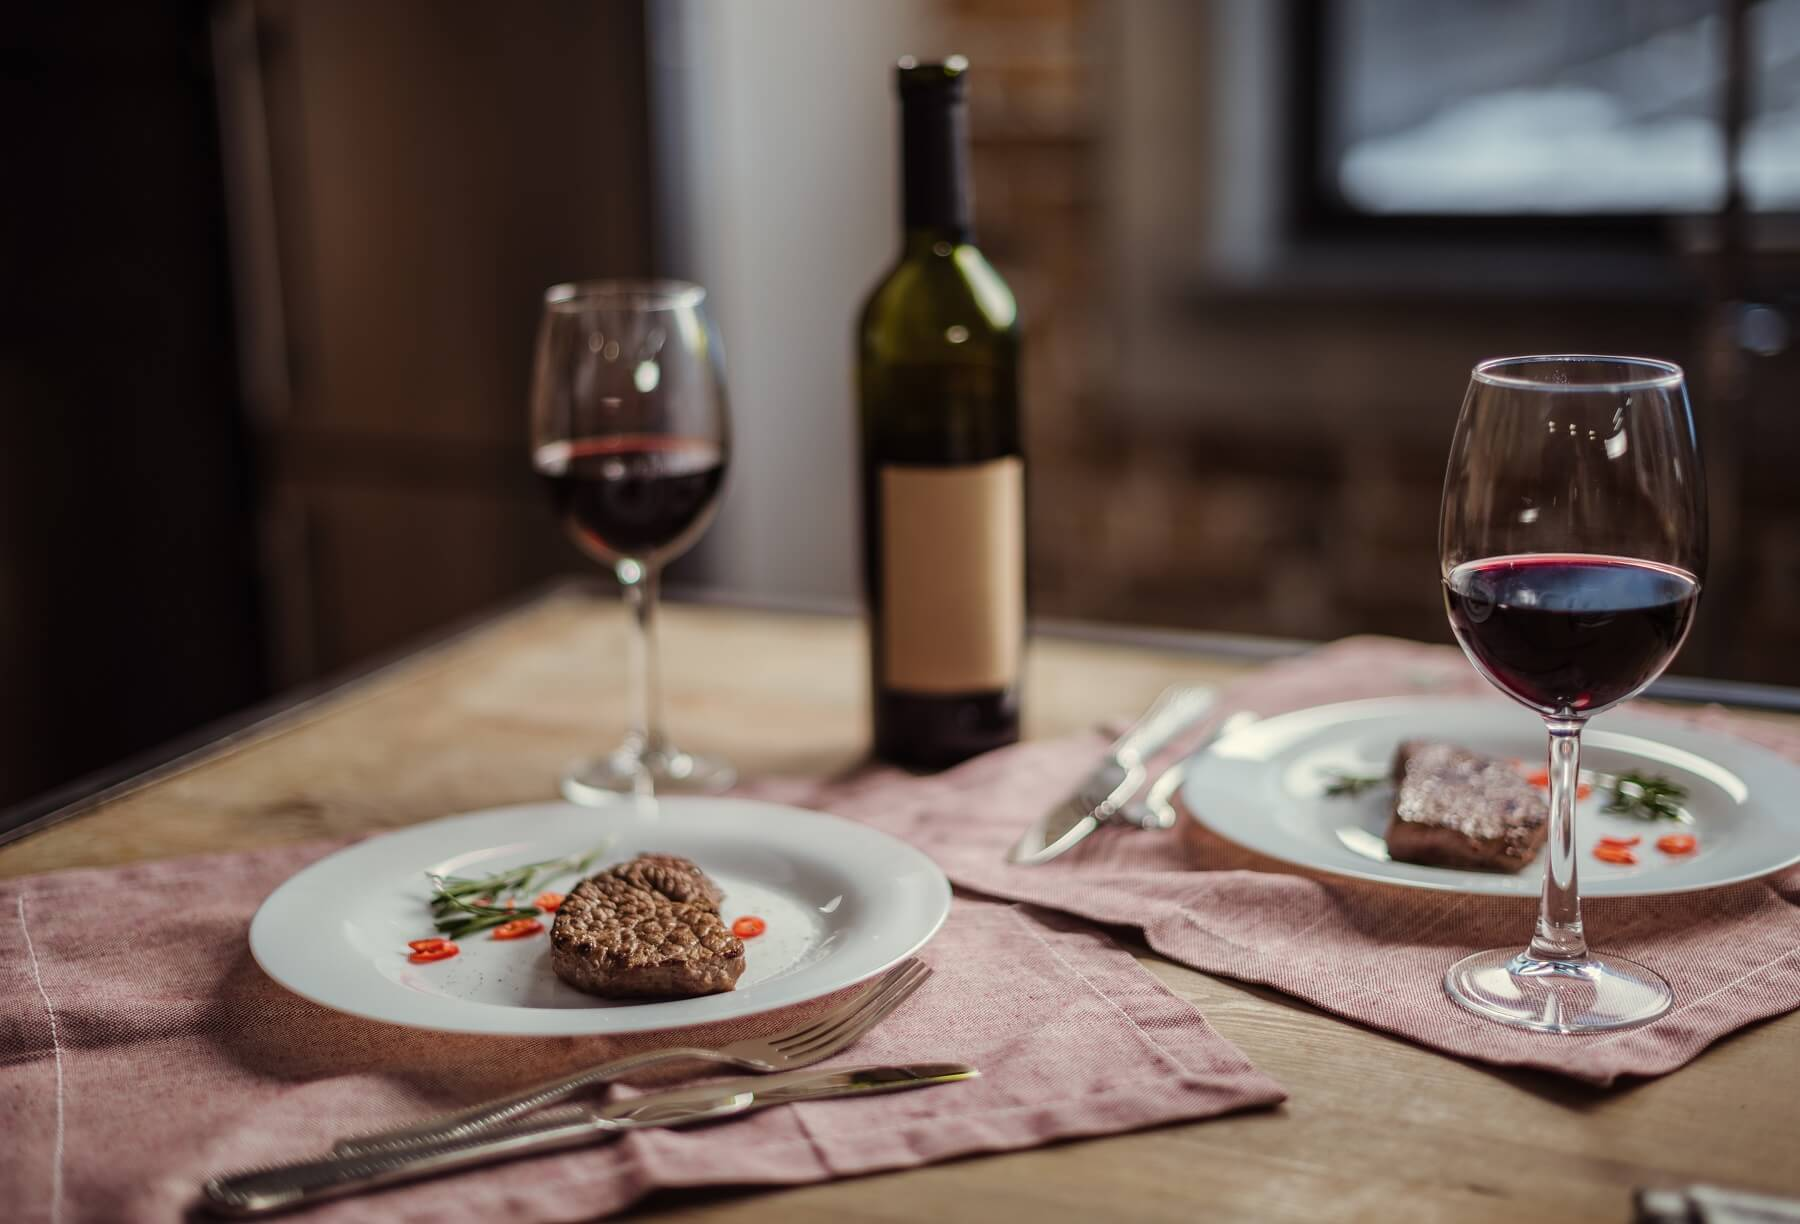 Three Romantic Valentine's Day Recipes and Wine Pairings